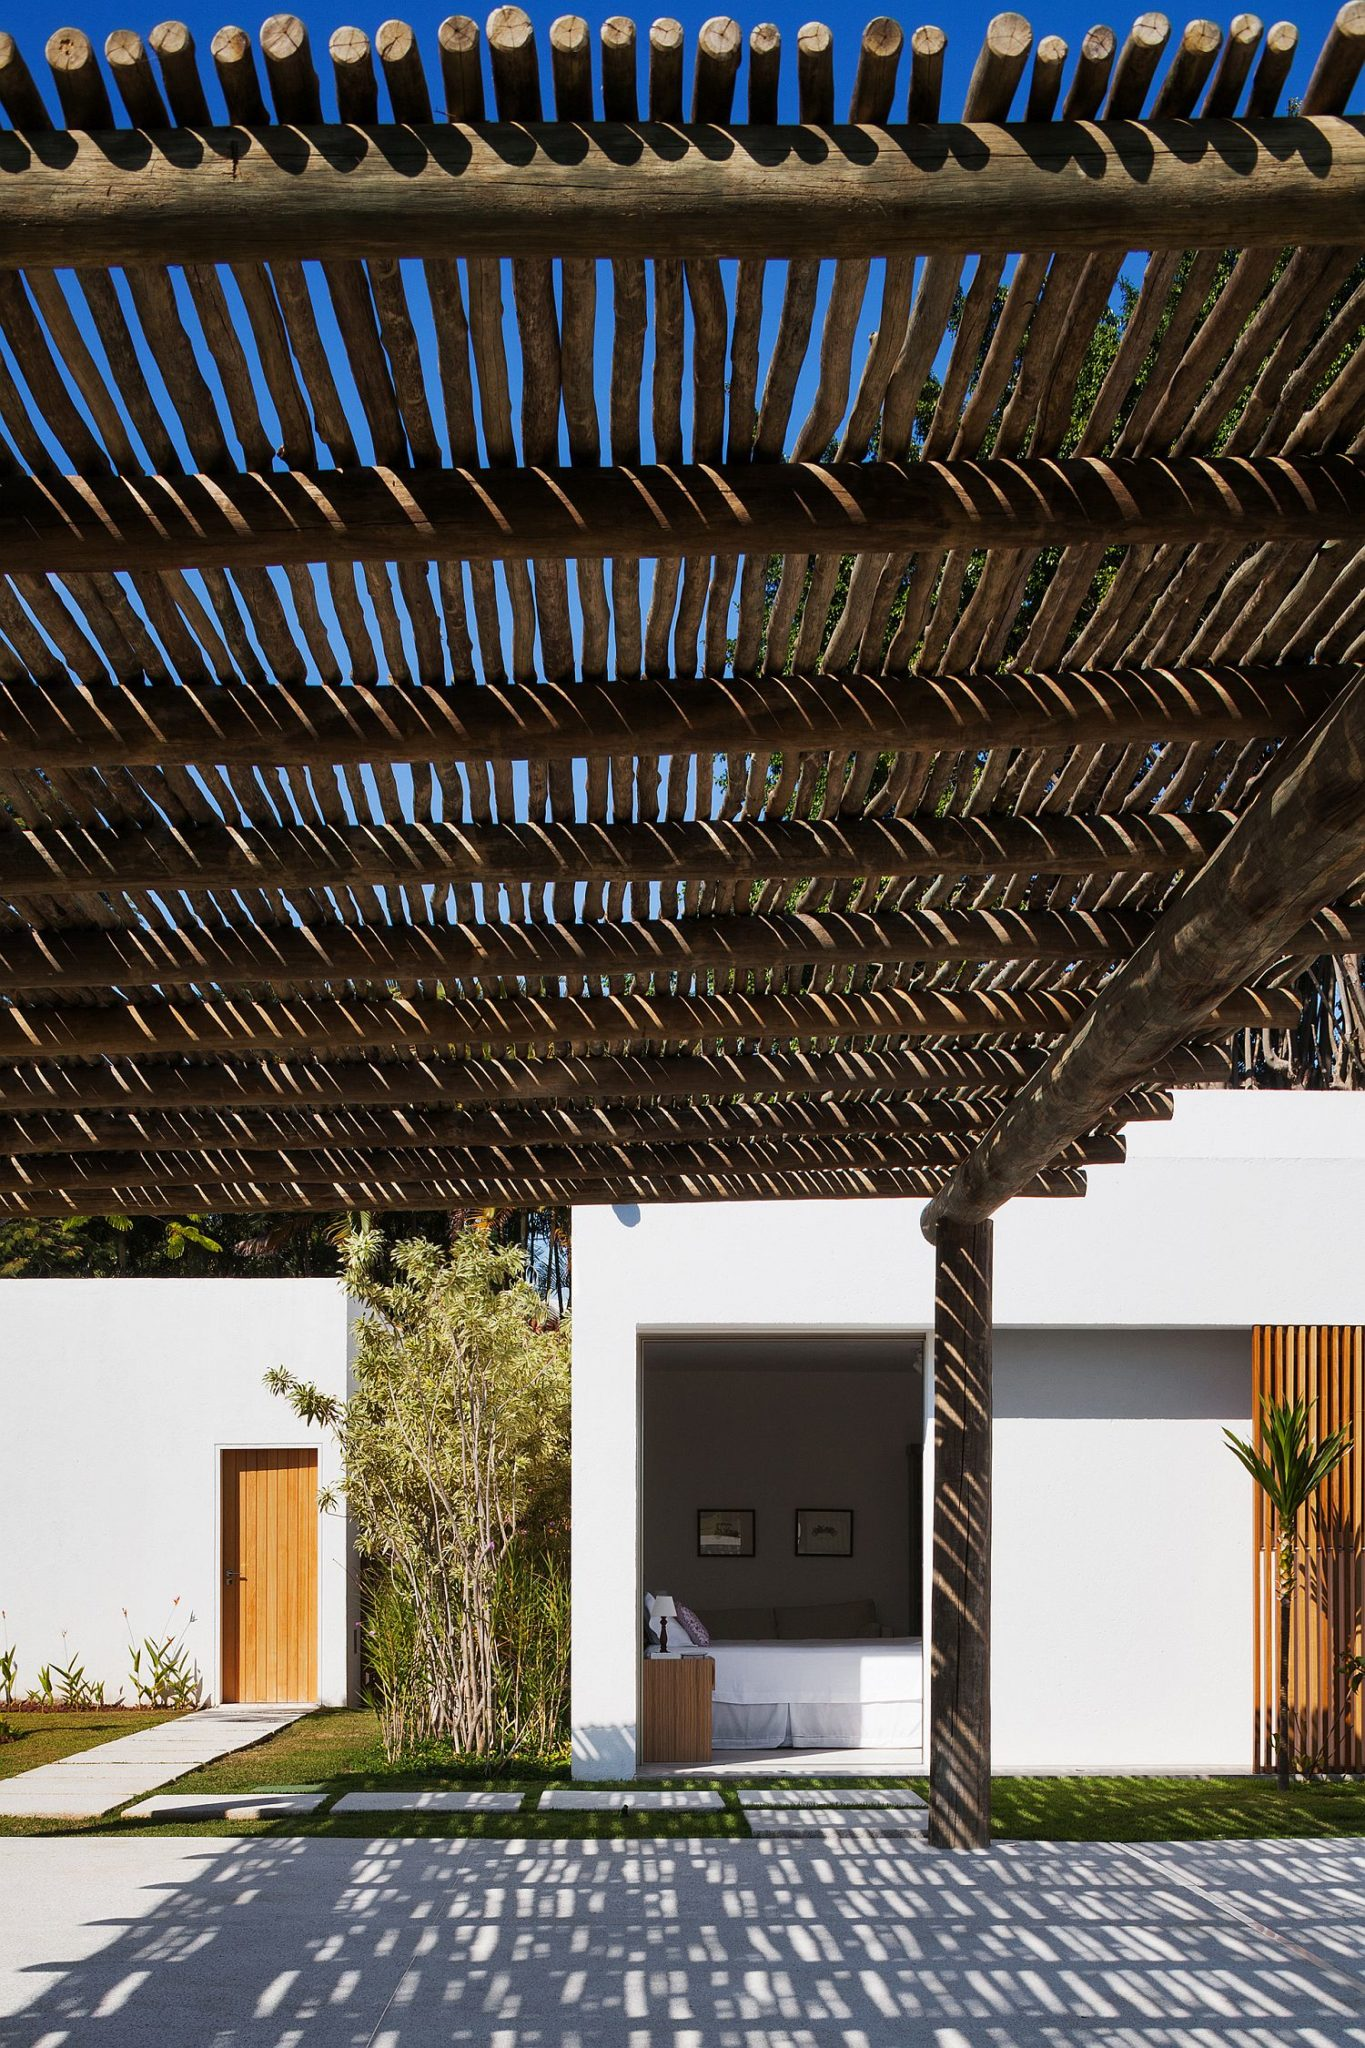 Natural pergola structure offers shade from midday sun